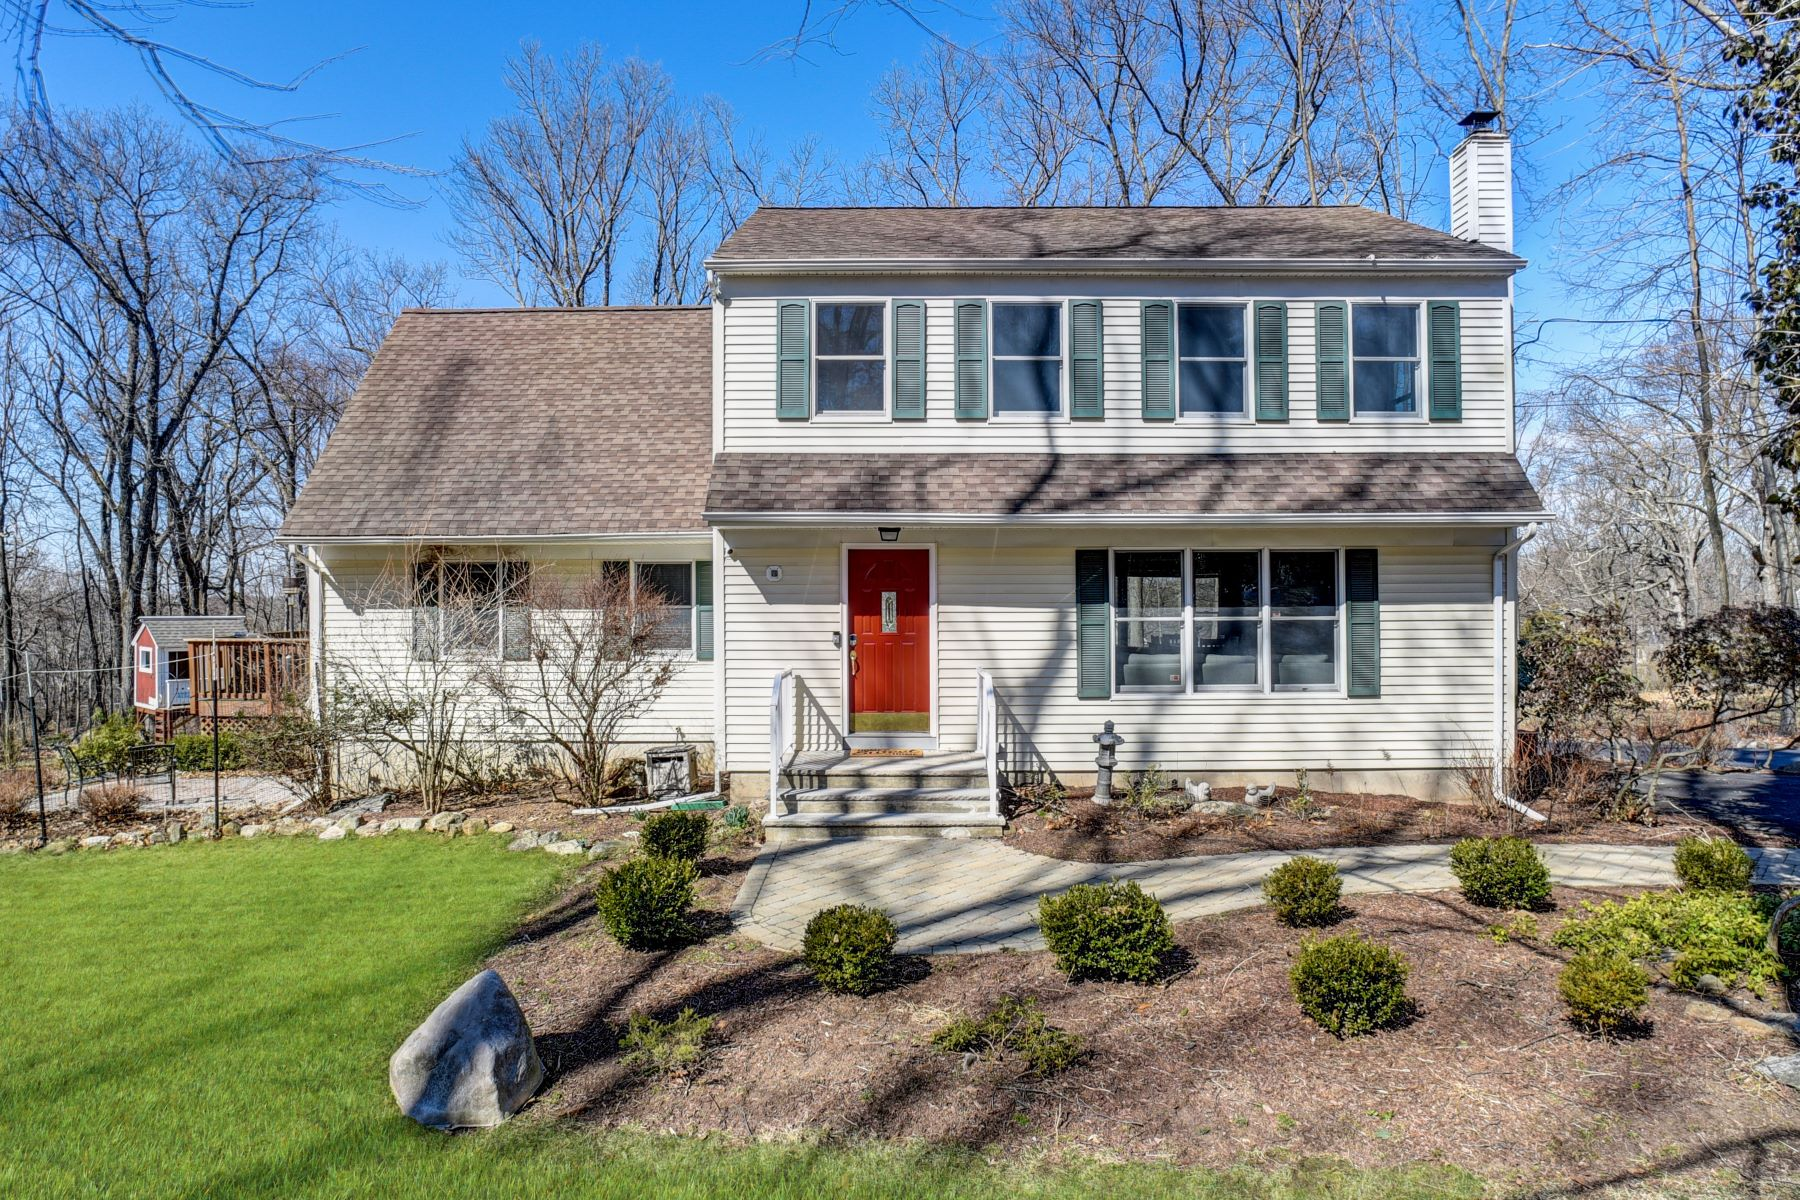 Single Family Homes for Sale at Beautifully Renovated Colonial 11 Overlook Avenue Randolph, New Jersey 07869 United States